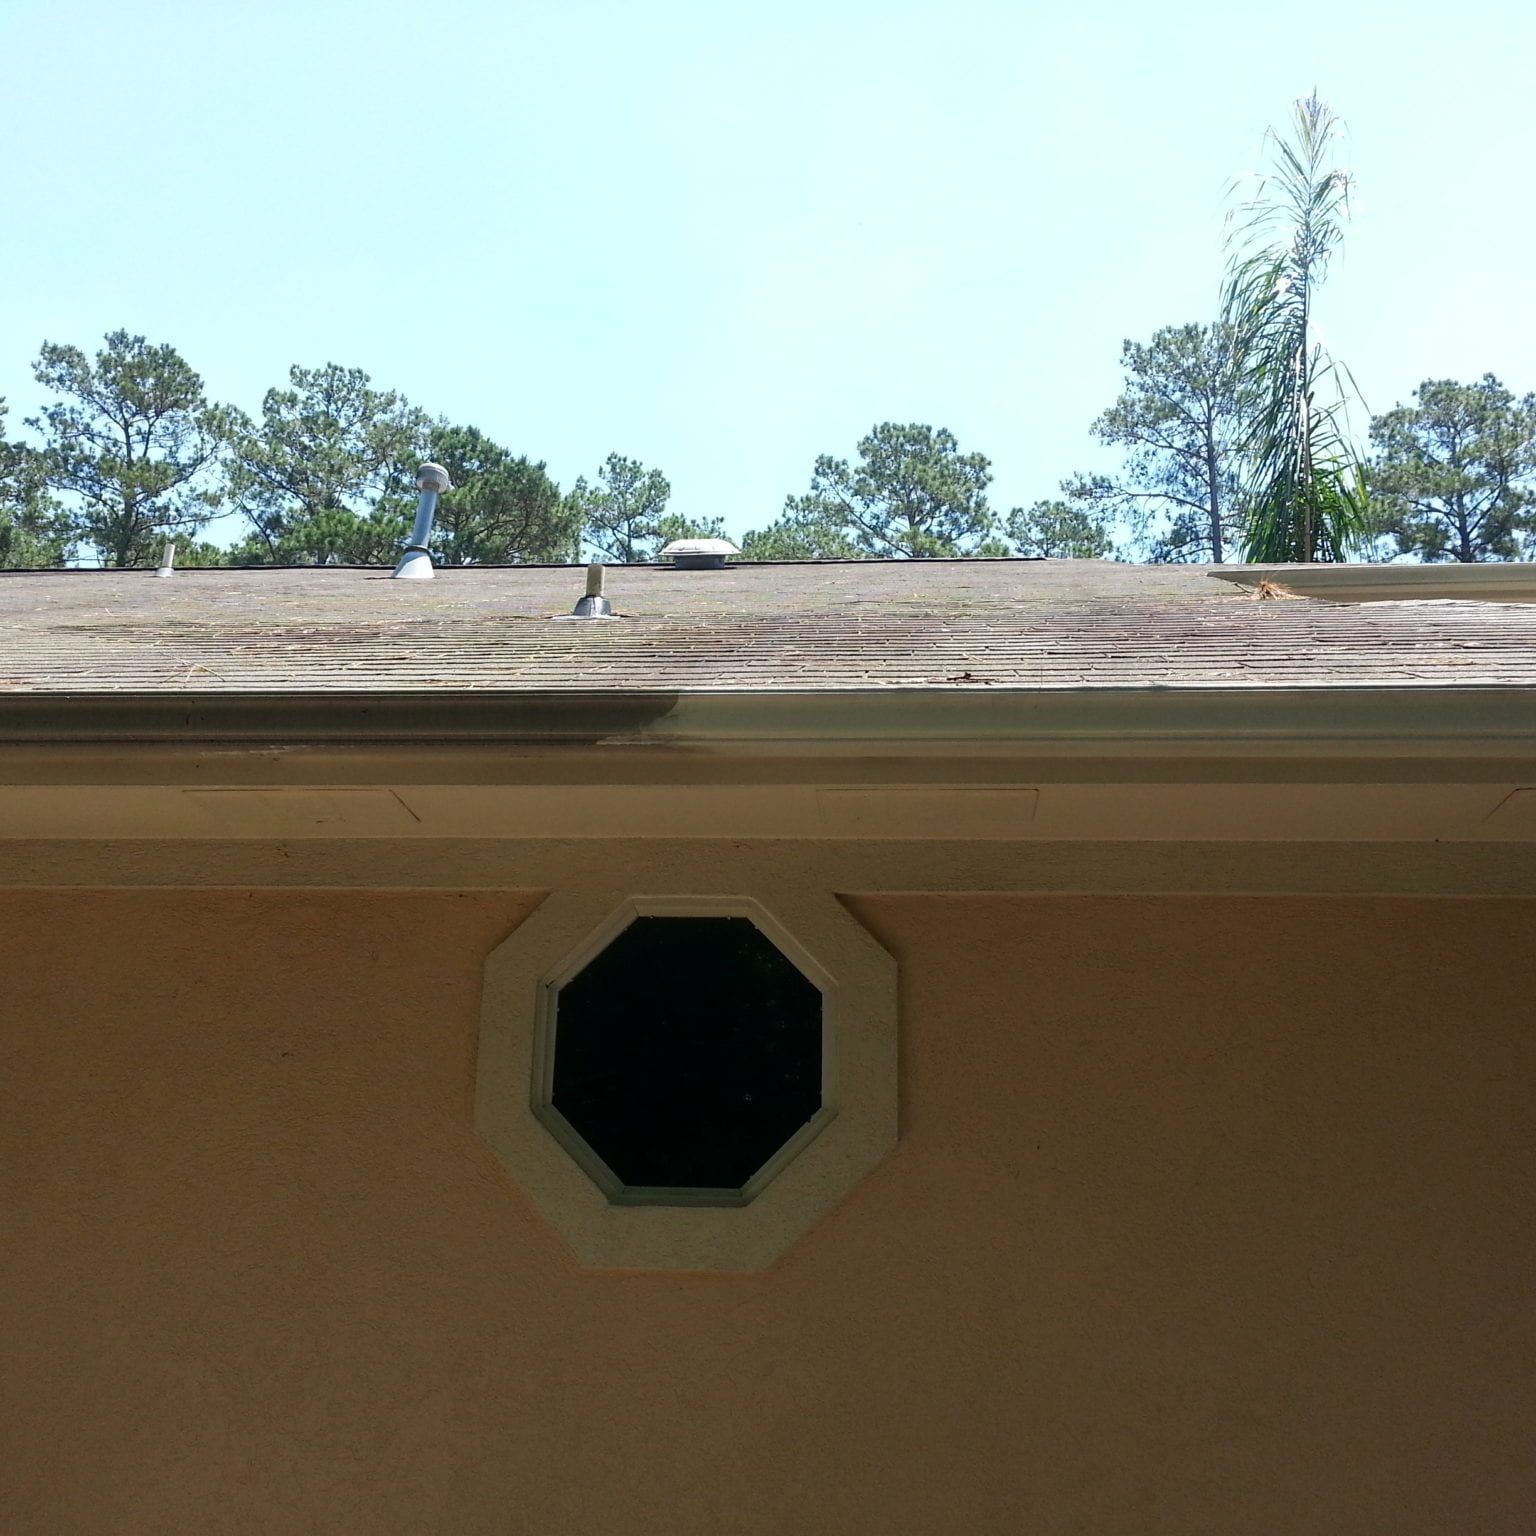 """GUTTER WHITENING Your gutters are clog-free and ready for action. You're prepared for any rainy day. But is your property's curb appeal up to snuff, too? With a gutter brightening solution from Cypress Pro Wash, the answer will always be """"yes!"""" WHERE PRACTICALITY AND CURB APPEAL MEET There's no denying it: your gutters are one of the most singularly functional aspects of your space. But that doesn't mean they should be at the expense of your property's curb appeal. Cypress Pro Wash offers a gutter brightening solution that will: Remove tiger stripes Our special cleaning products are designed to remove the """"stripes"""" of dirt and grime that run down the length of your gutter system. Lift away stains Dirt, pollen, and other imperfections are a thing of the past with our professional service on the job. Kill mold and algae These bacteria, plus mildew and moss, are a common sight on gutters. But we don't just remove them – we kill the spore growth."""